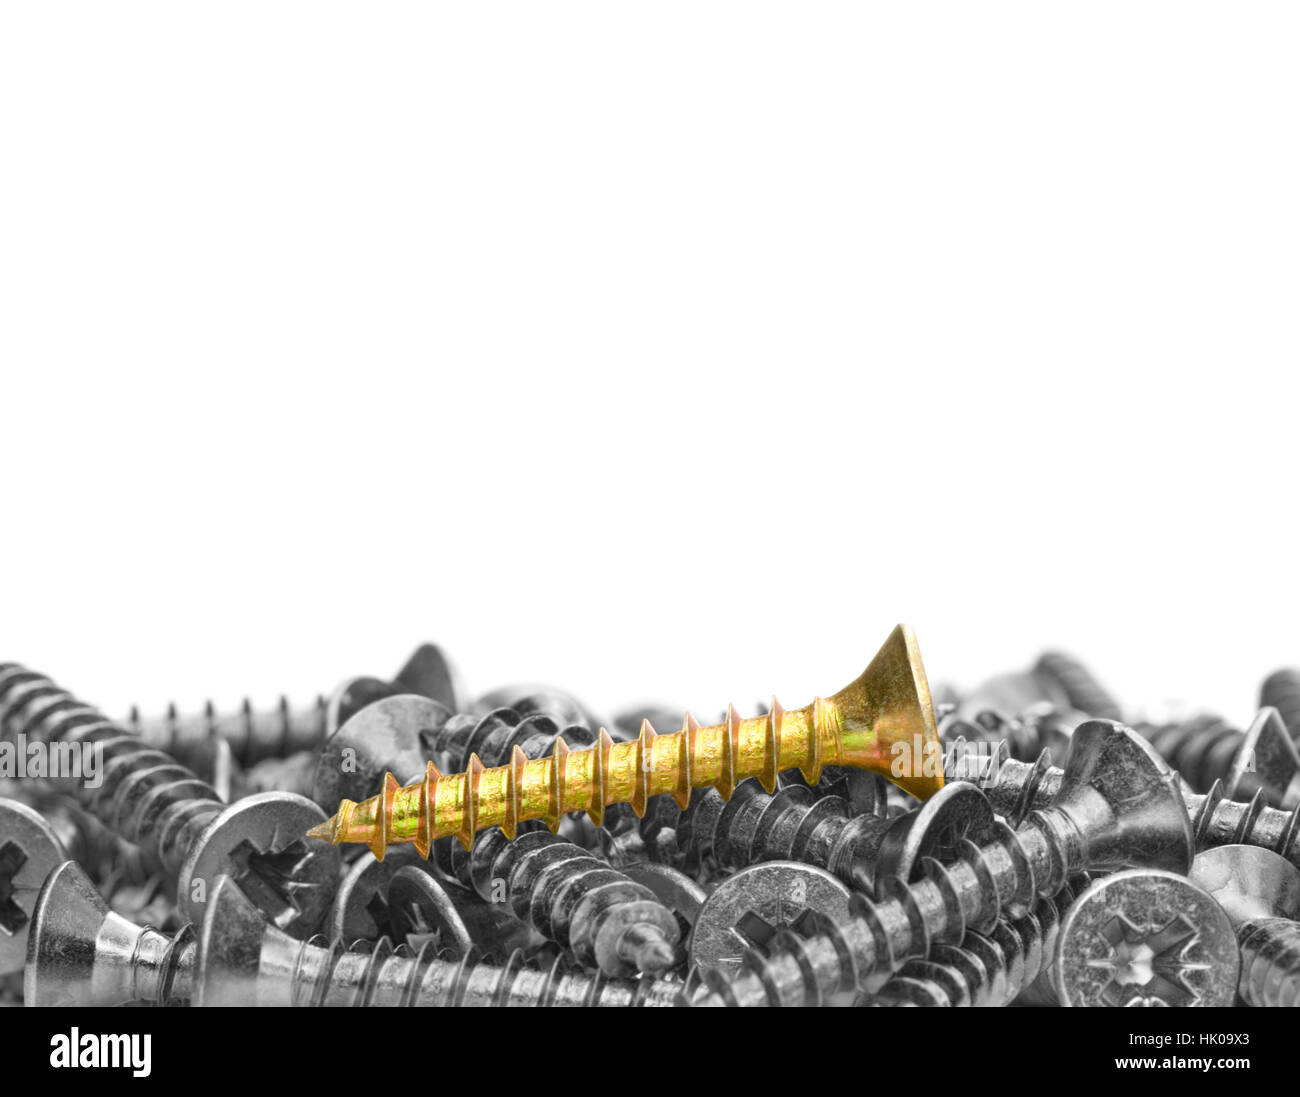 Many black and white screws and one color screw on a white background